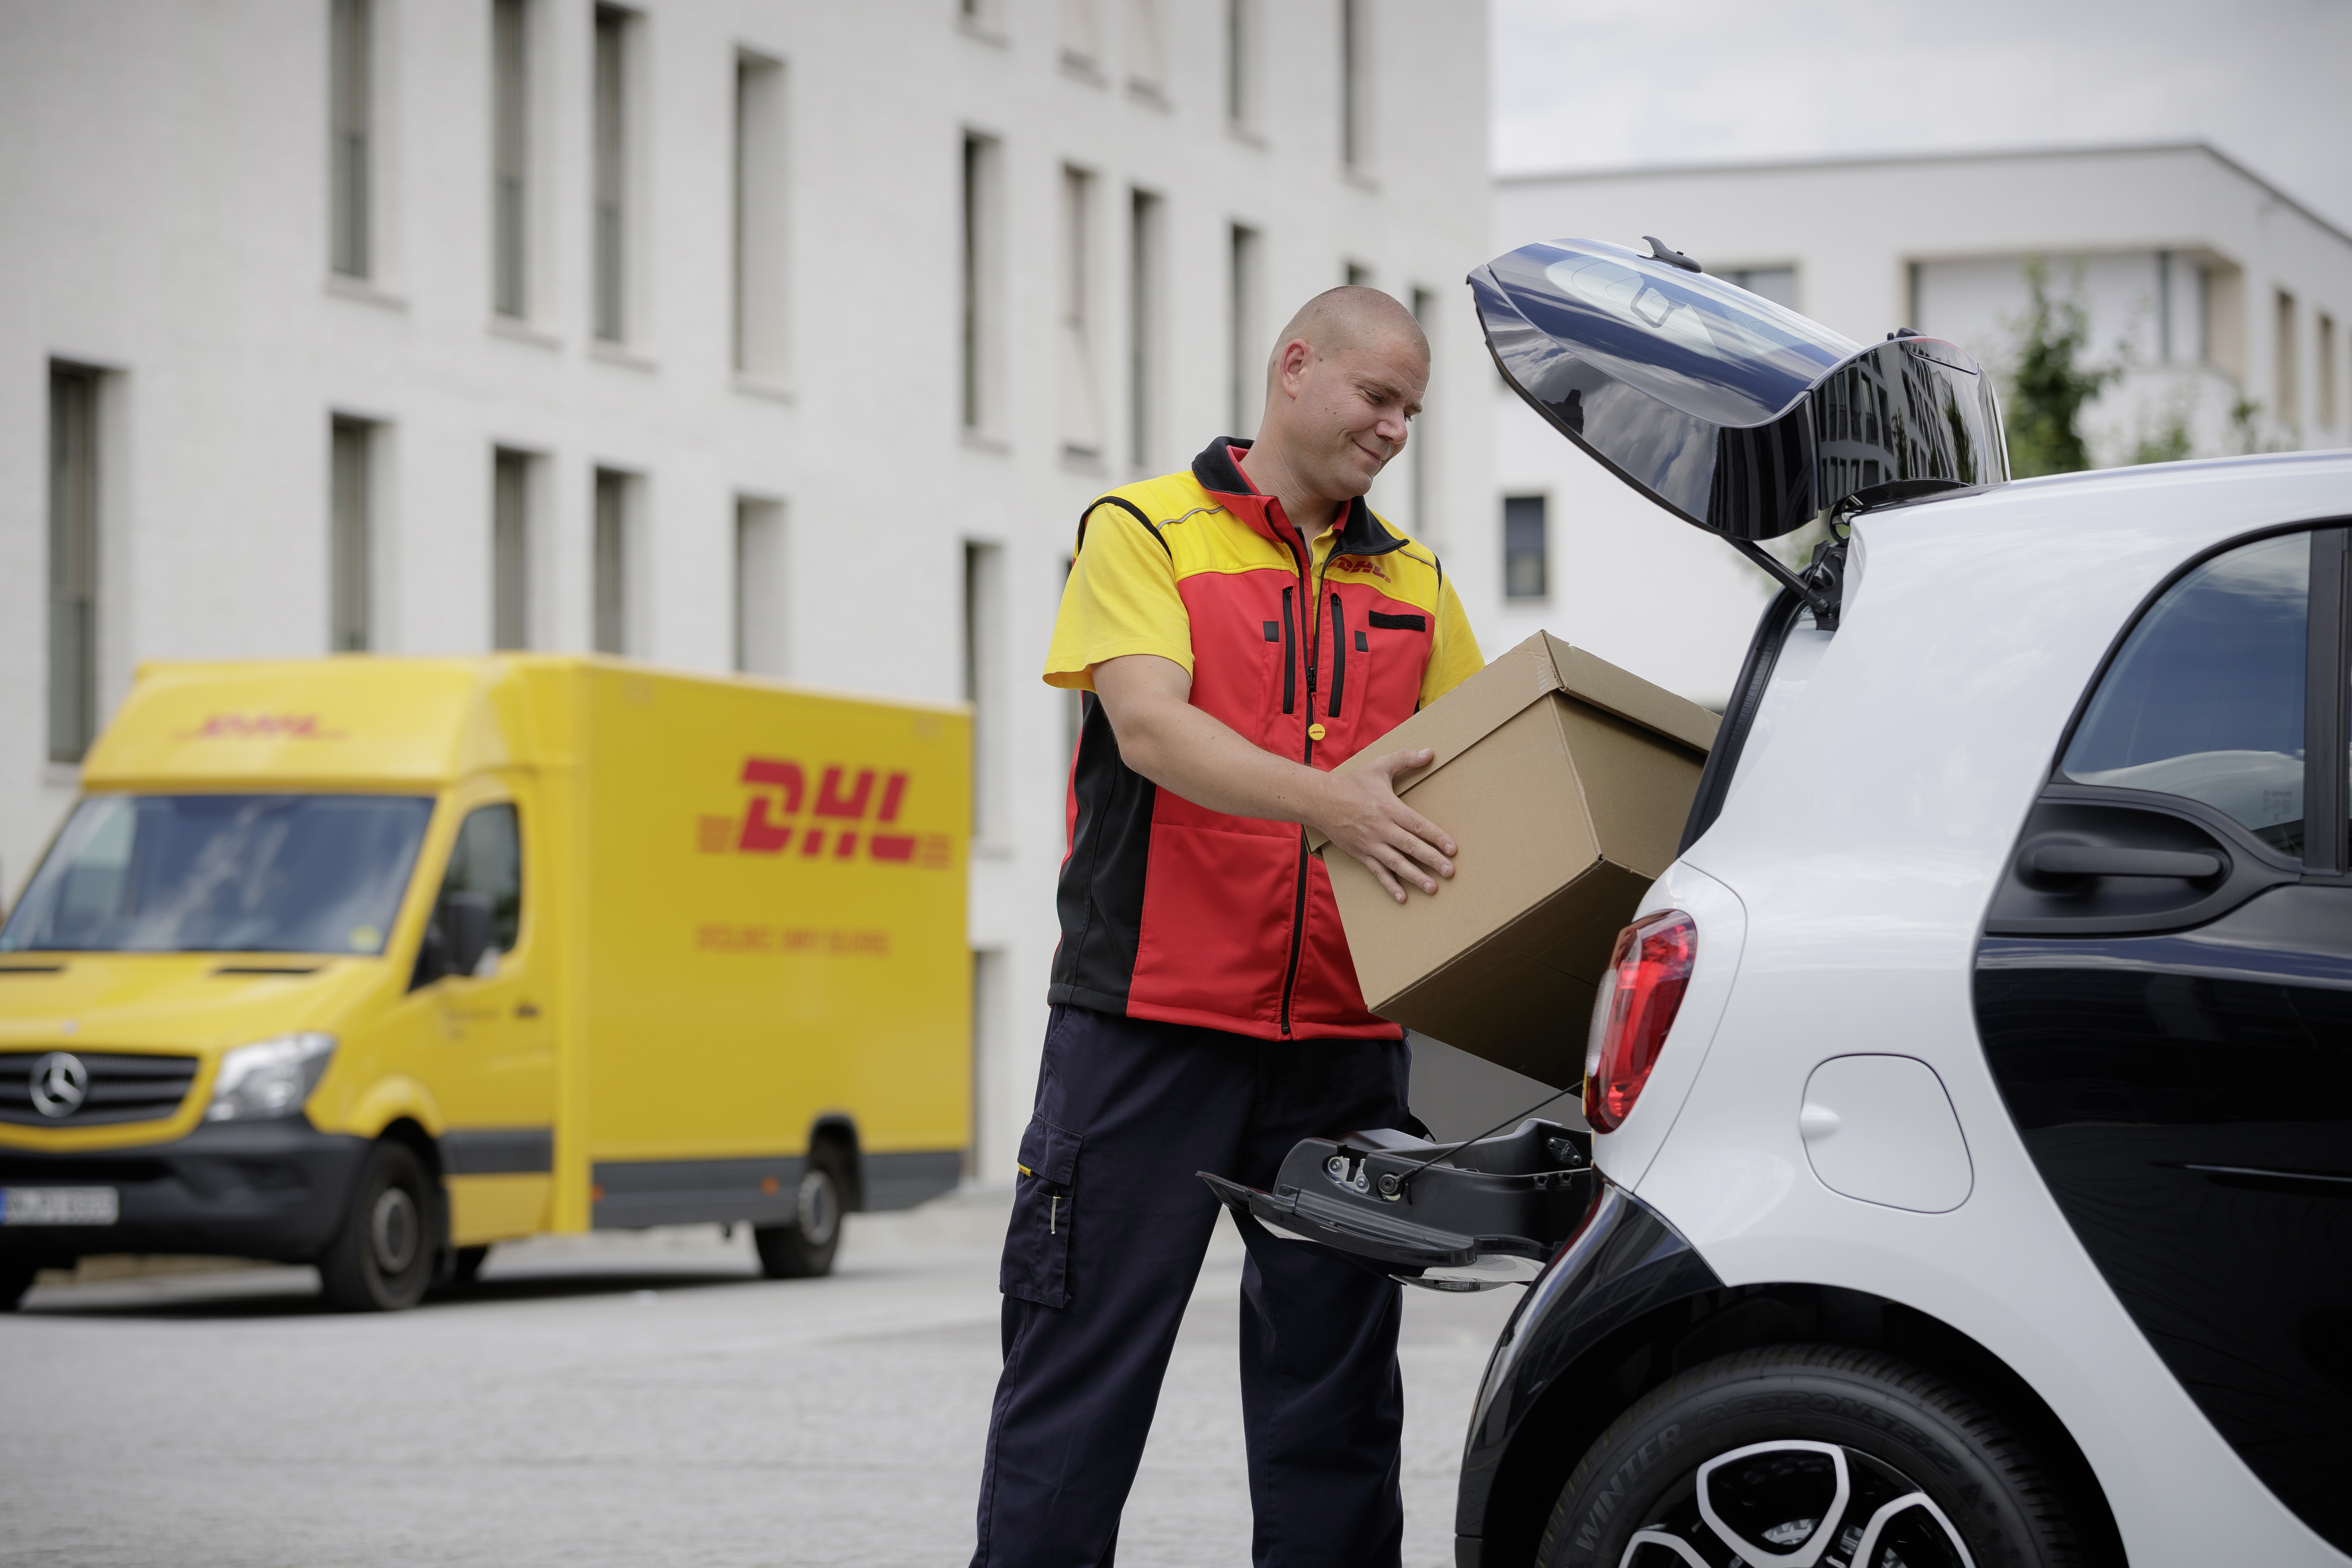 Daimler's Smart cars will be able to take deliveries from DHL.